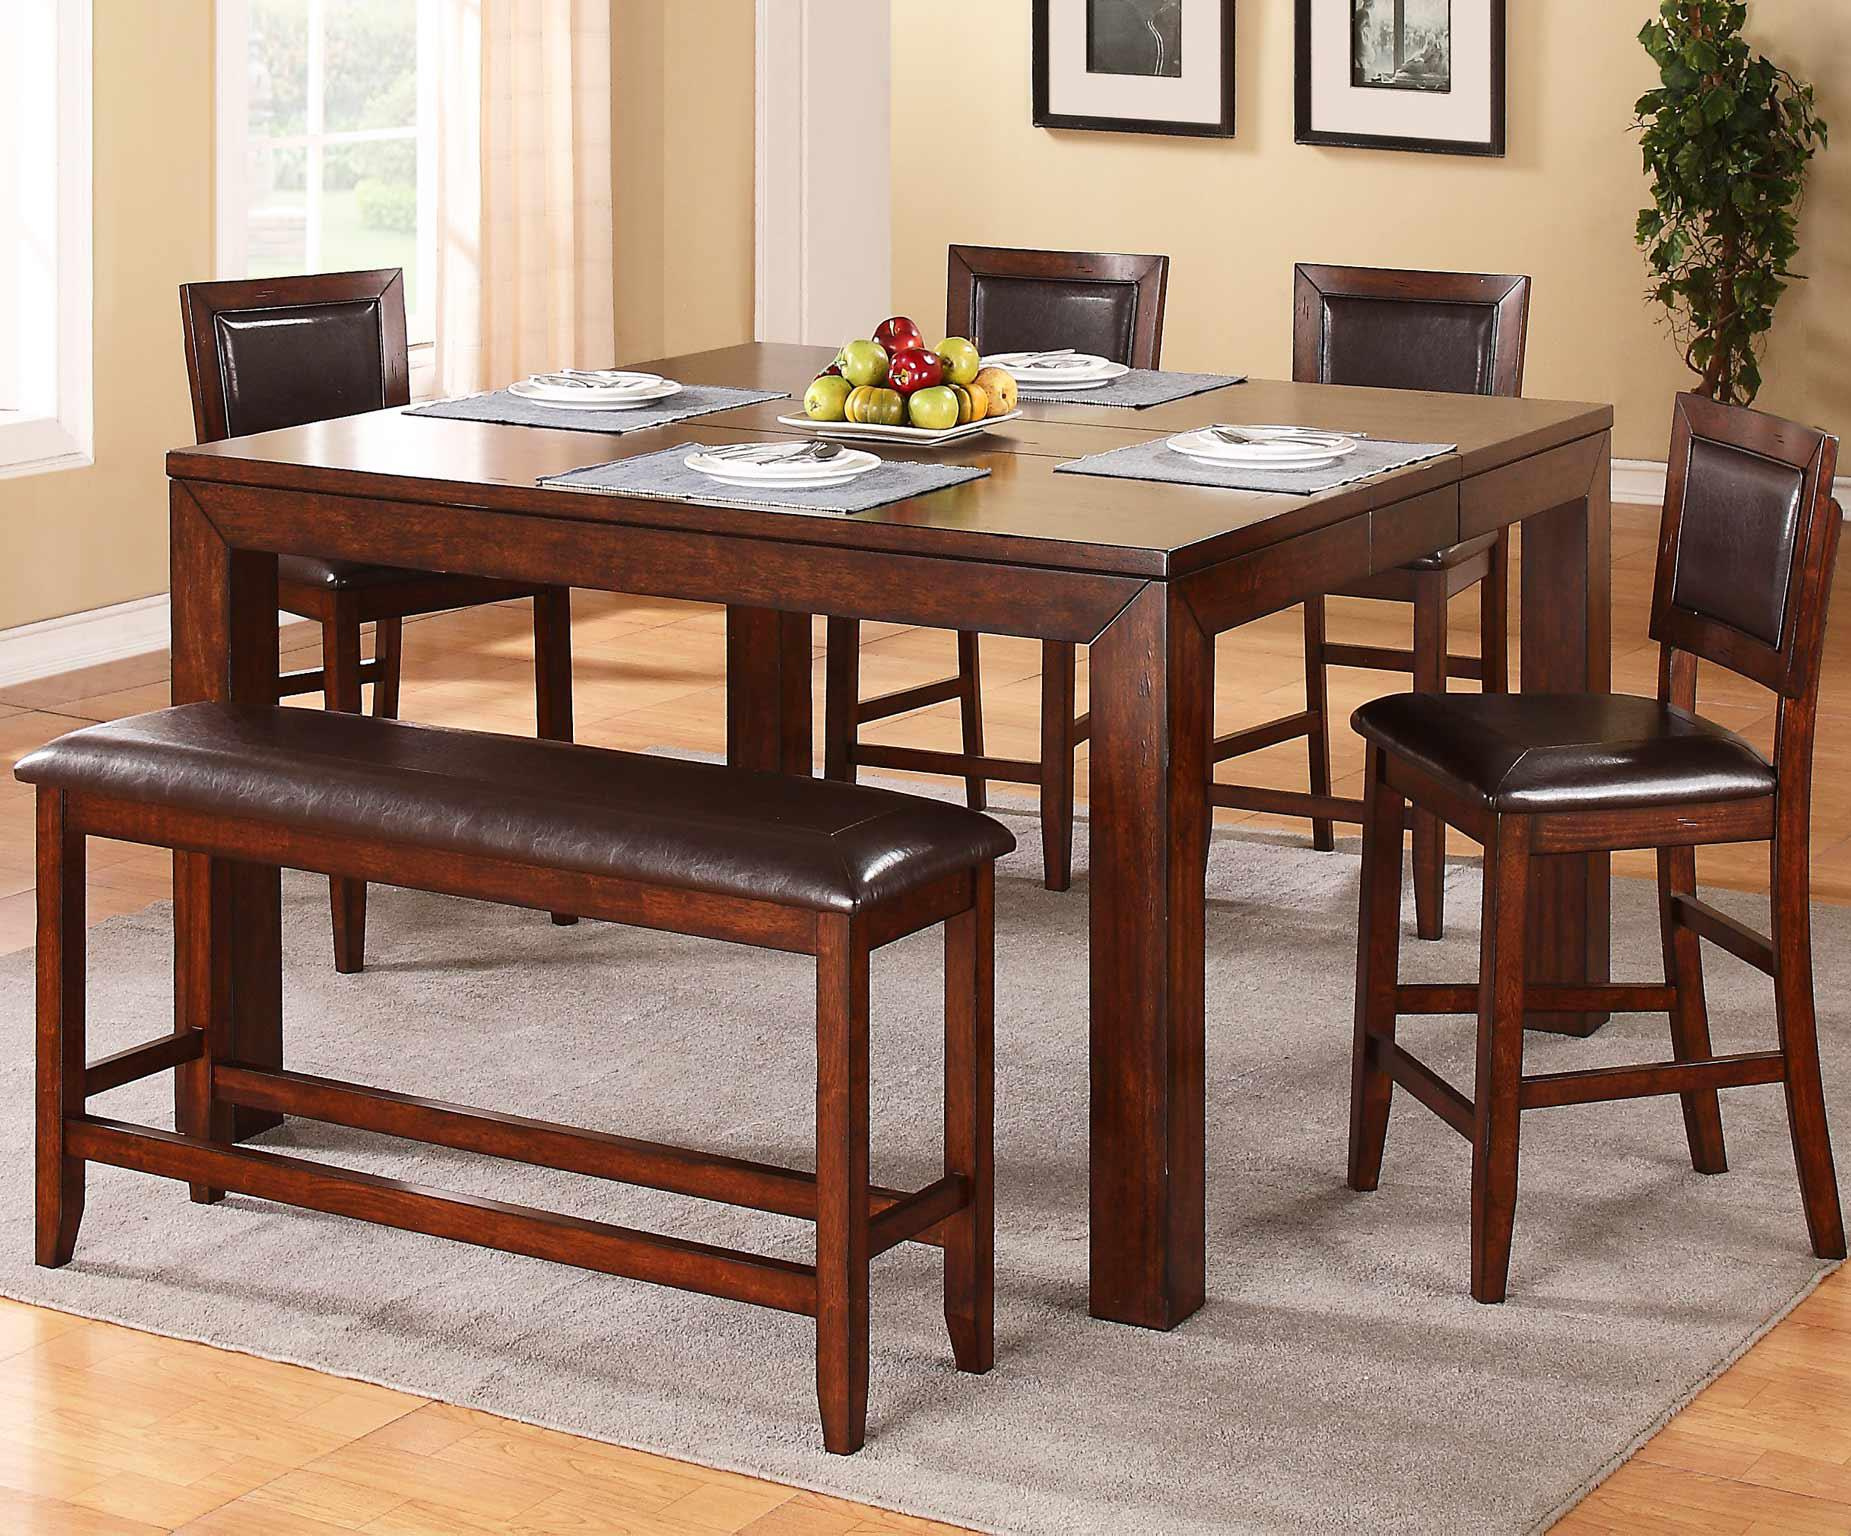 Winners Only Fallbrook 6 Piece Counter Height Dining Set - Item Number: DFMT16060+4x45024+45524